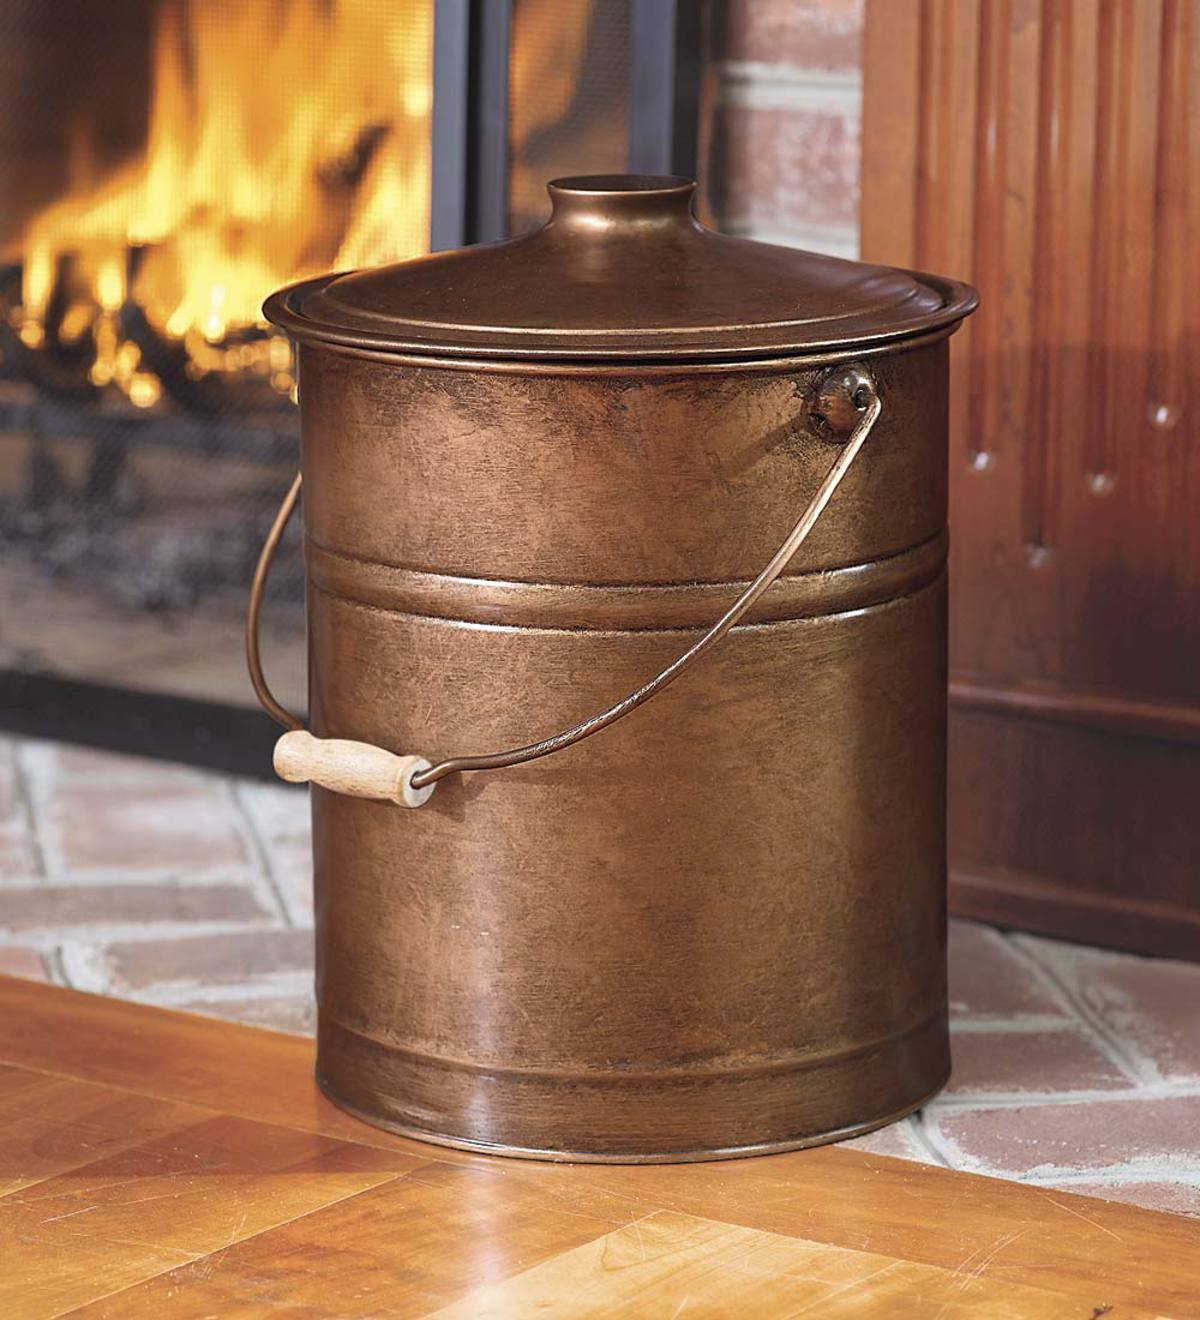 Deluxe Galvanized Ash Bucket with Handle, Lid and Double-Layer Bottom